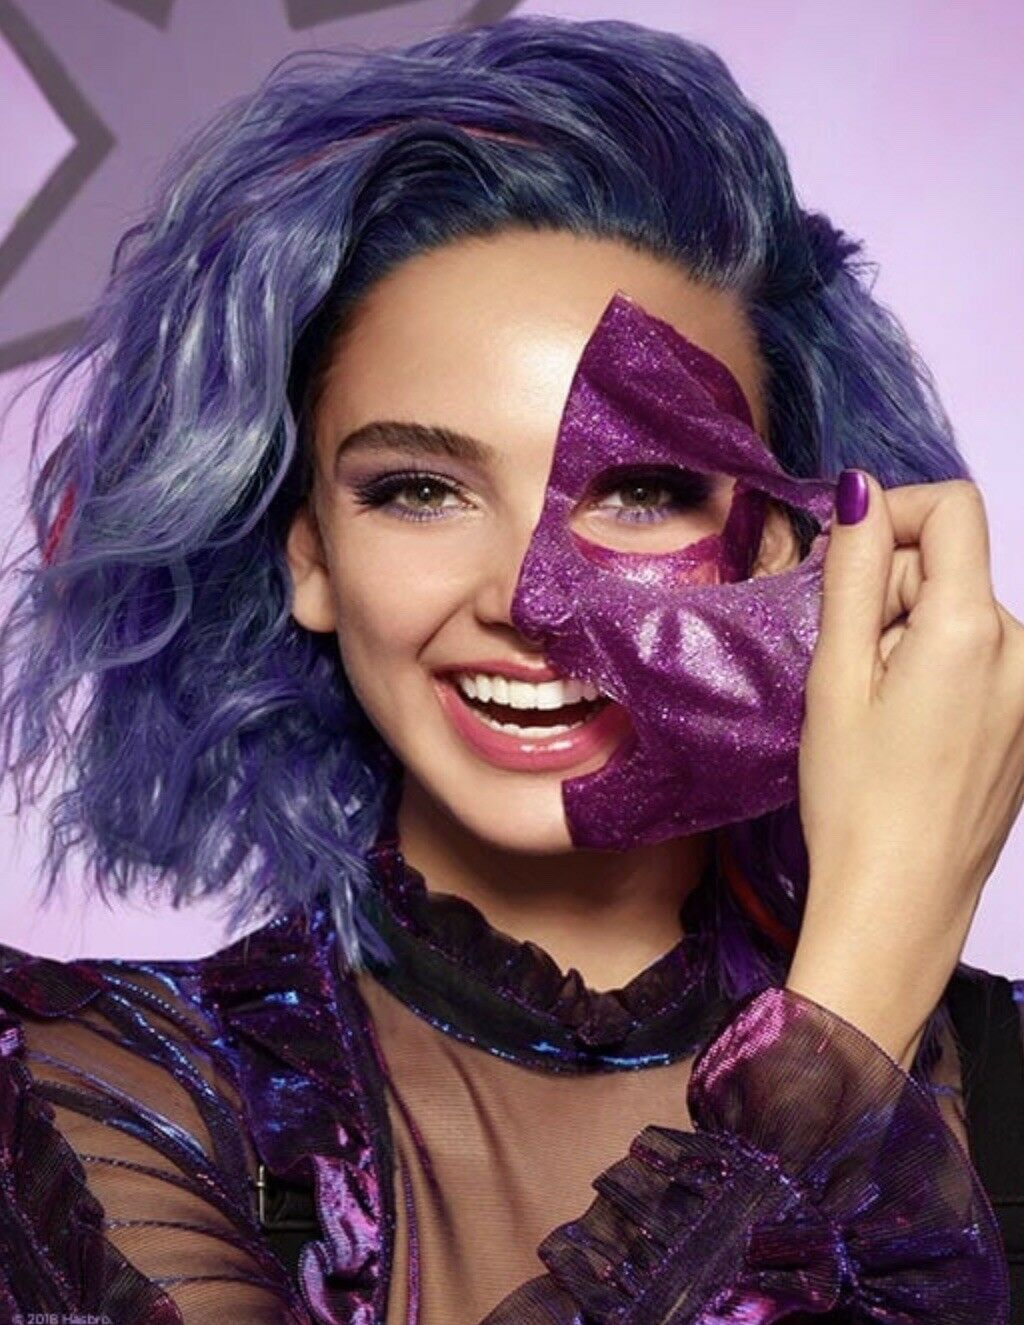 Glamglow My Little Pony Twilight Sparkle Glittermask Gravitymud 50 Gr 1 Of 4only Available